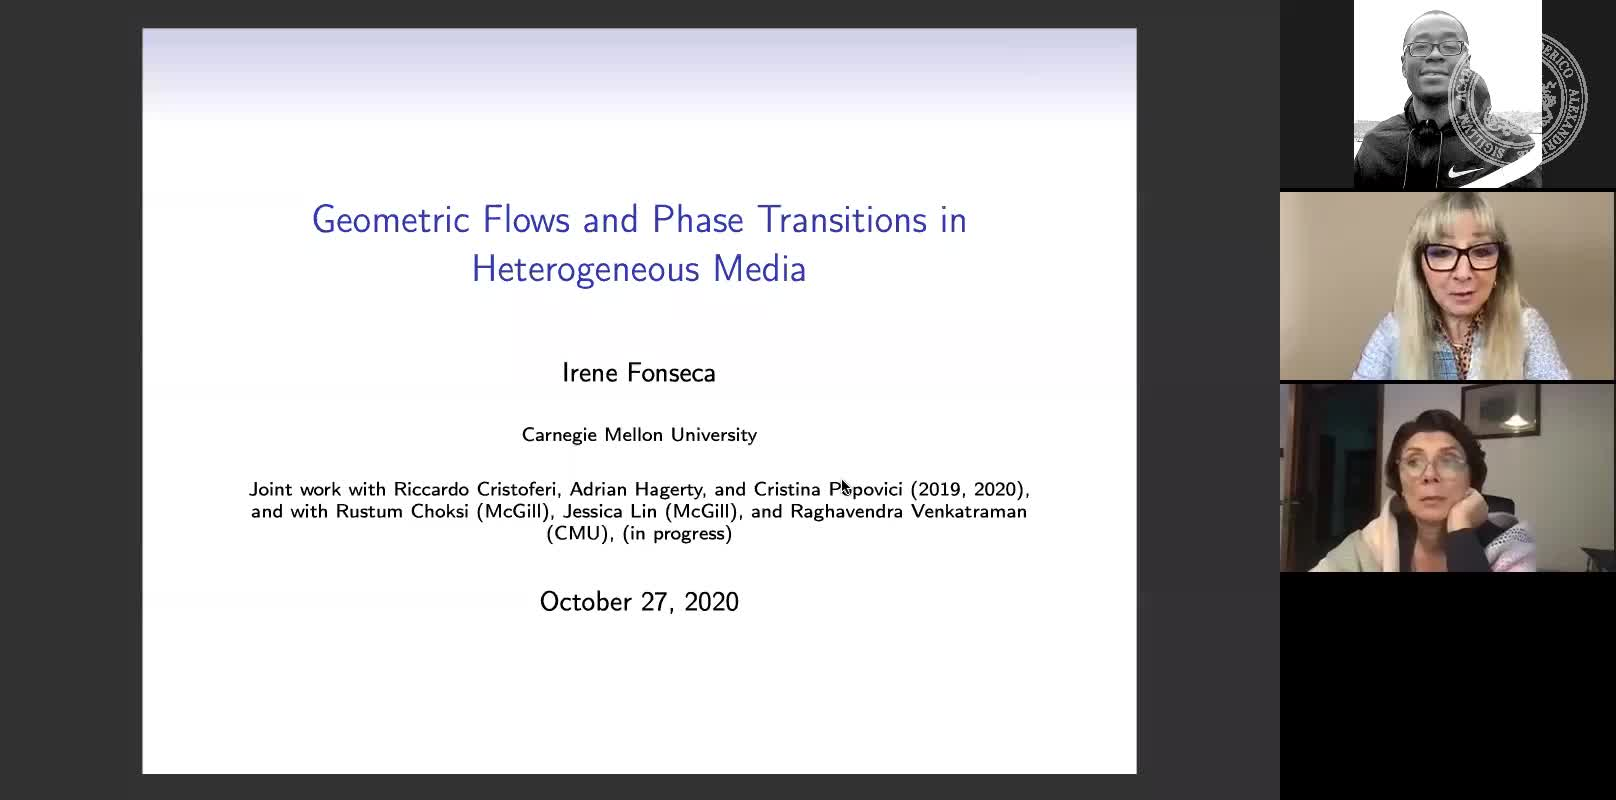 Geometric Flows and Phase Transitions in Heterogeneous Media (Irene Fonseca, Carnegie Mellon University) preview image